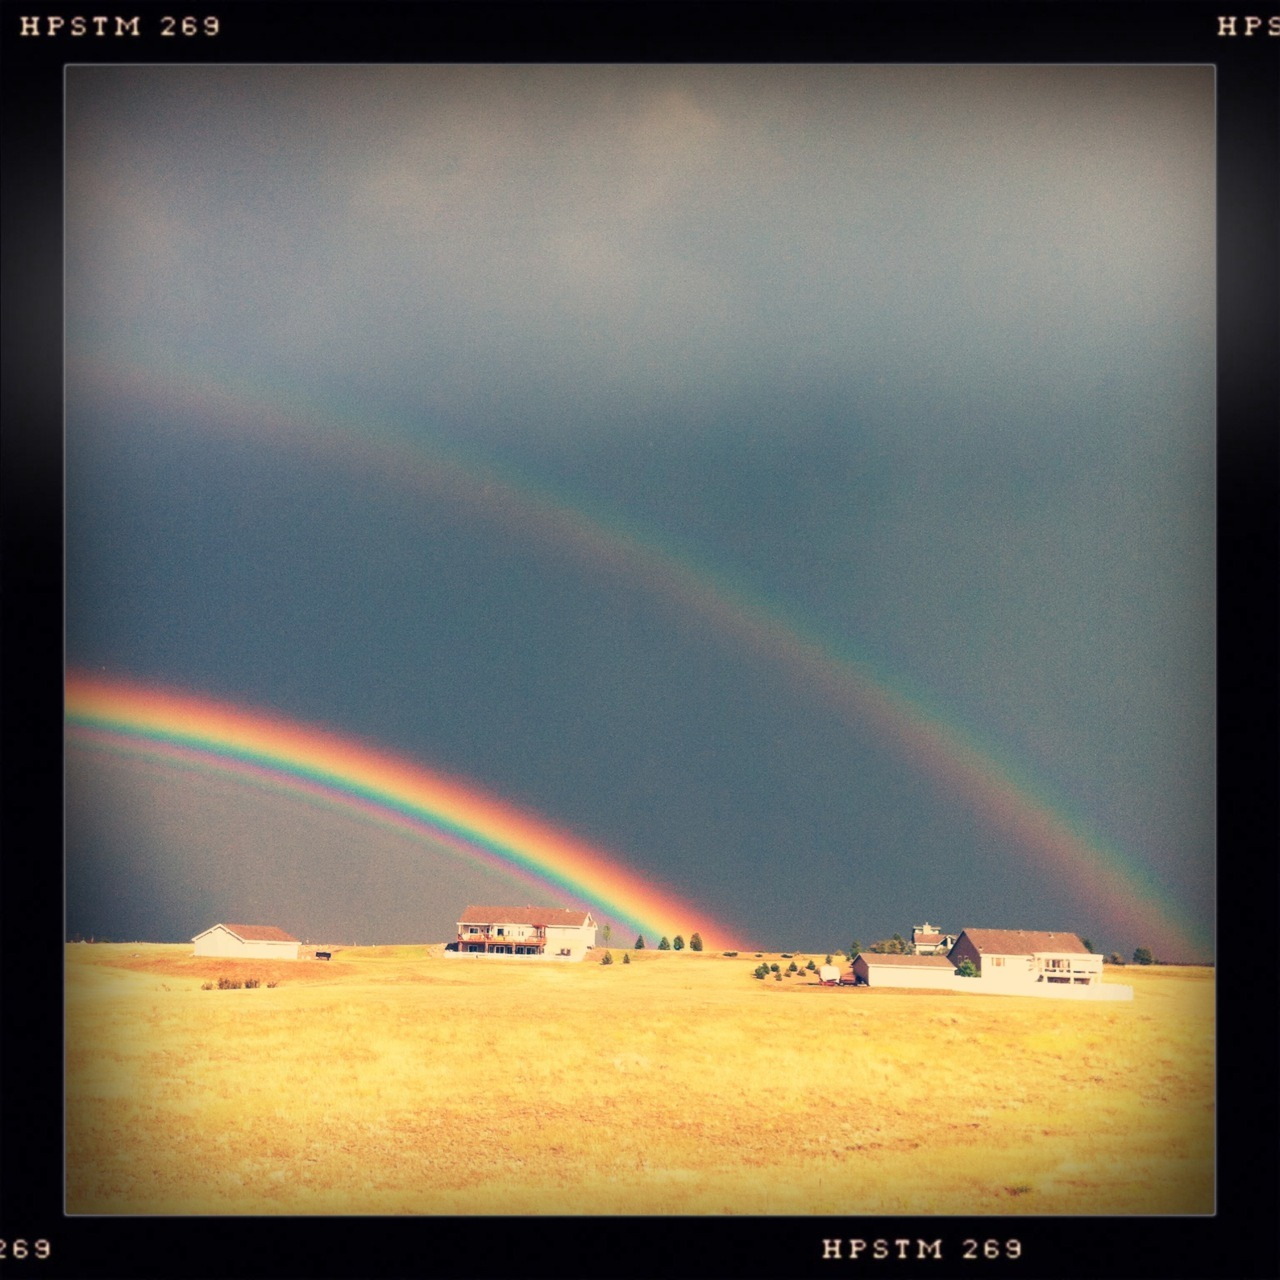 Rainbow III Taken with Hipstamatic, Tejas Lens, Pistil Film, No Flash.